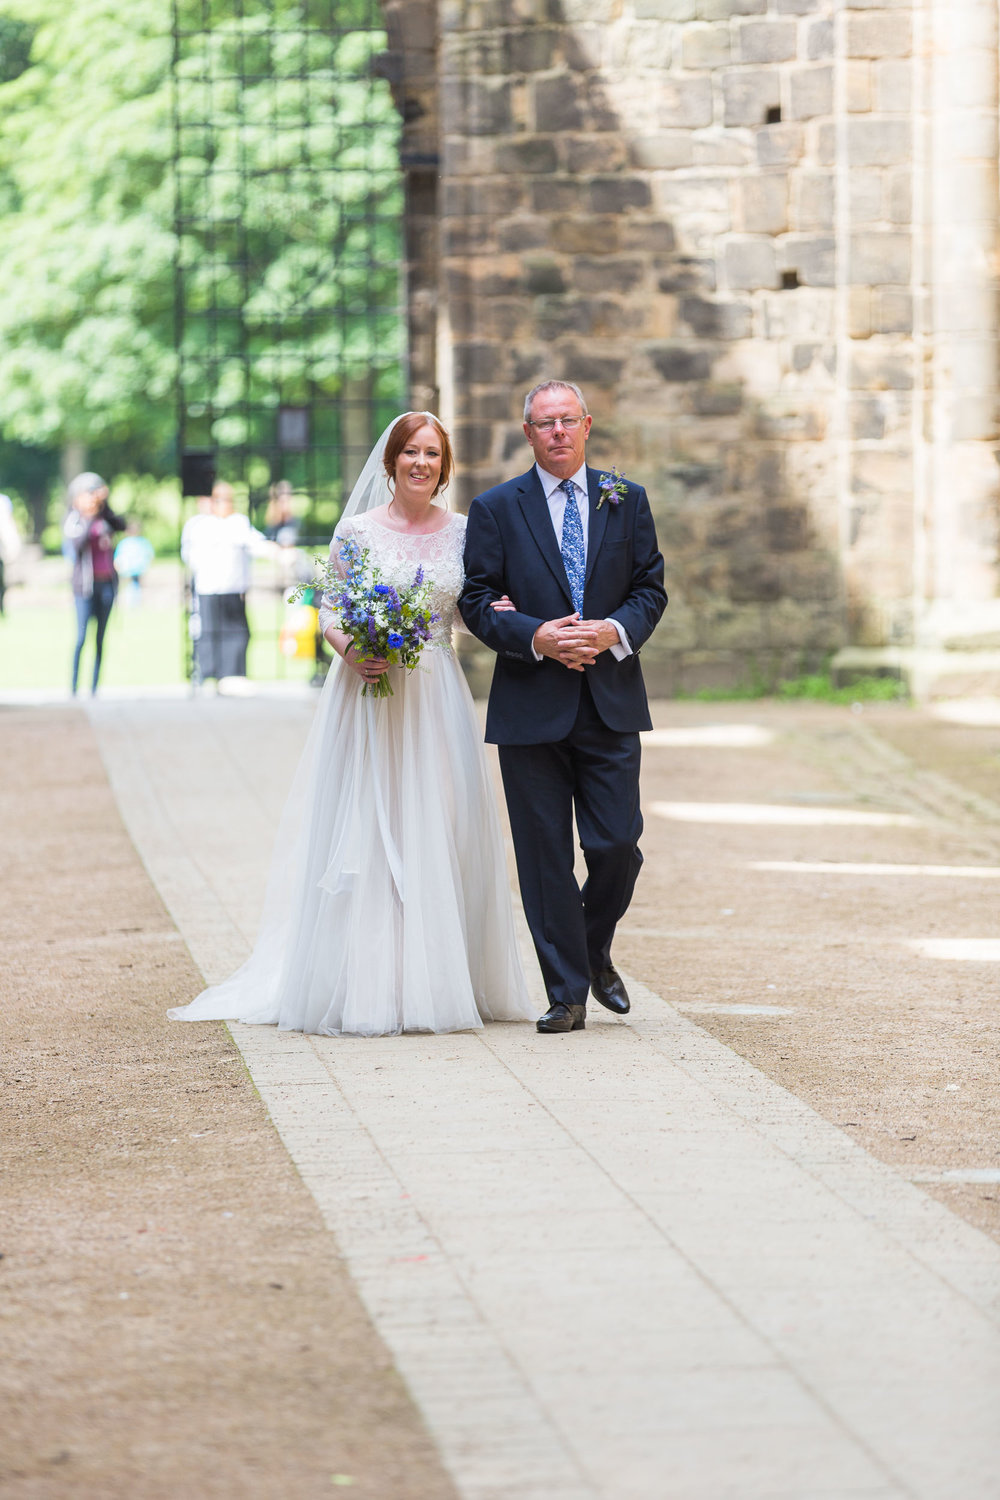 Amy & Oliver-Wedding Part II-Kirkstall Abbey-Leeds-photo-0152.jpg